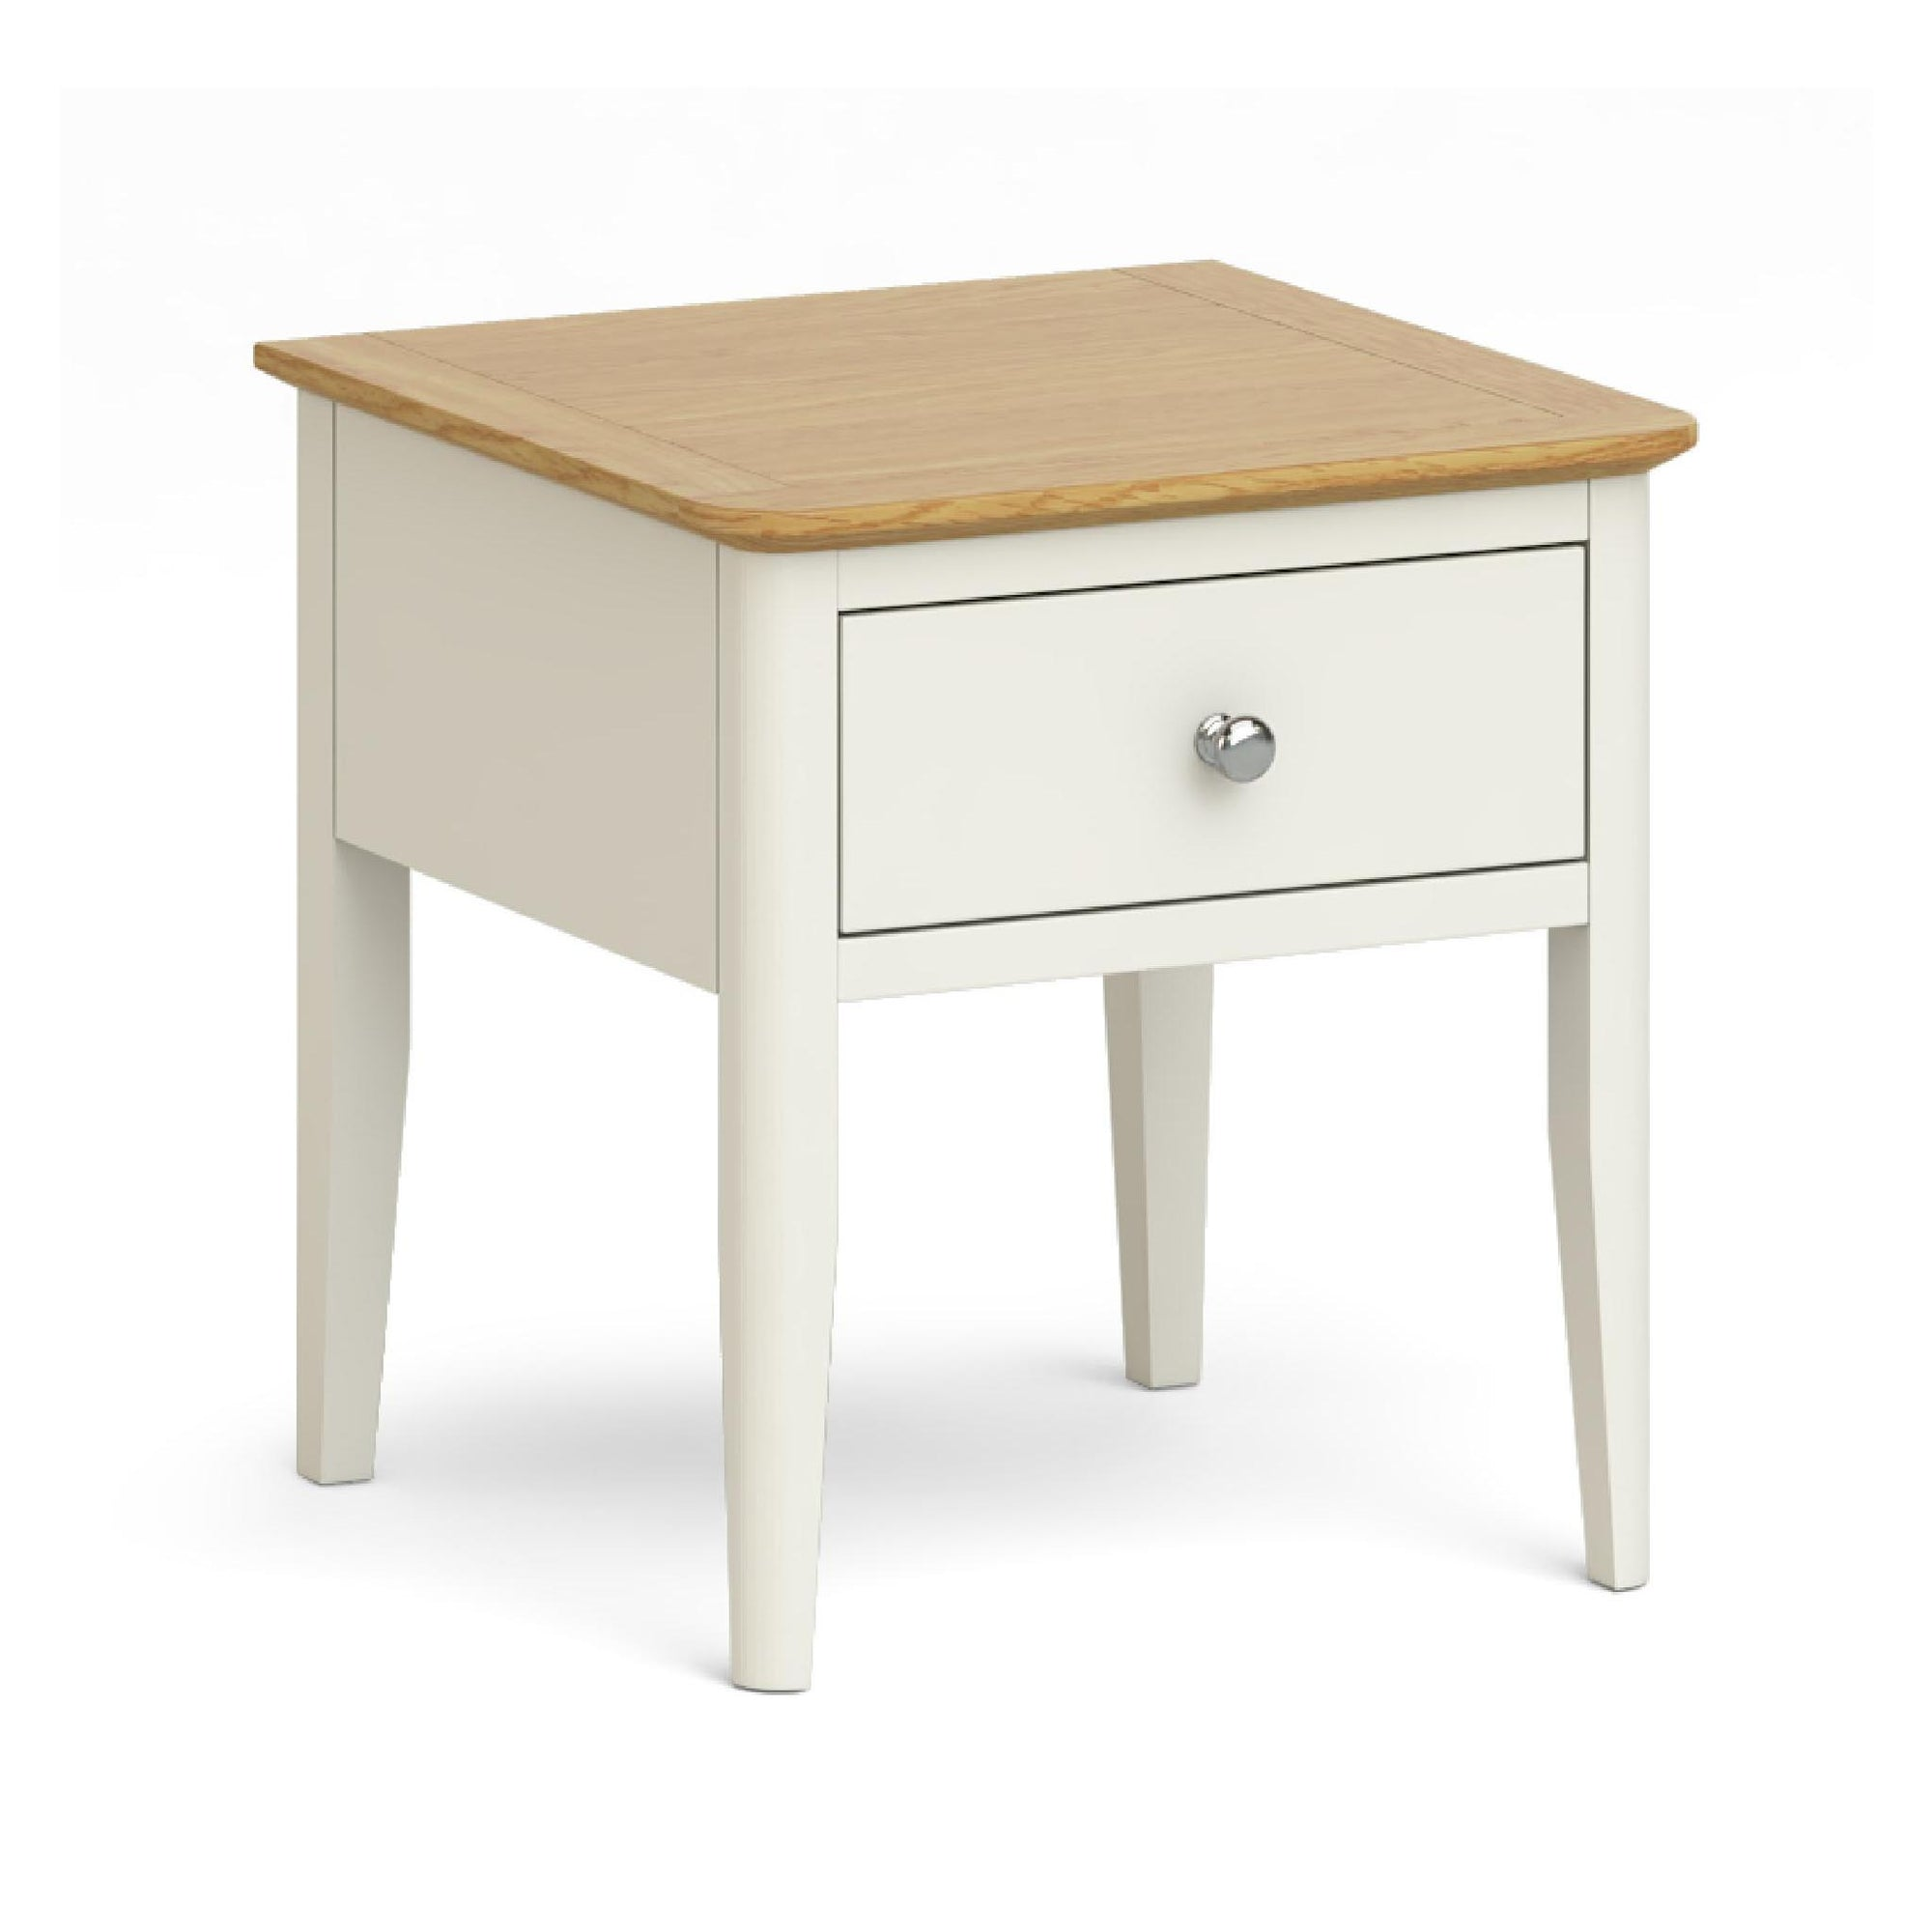 Windsor Cream Lamp Table by Roseland Furniture